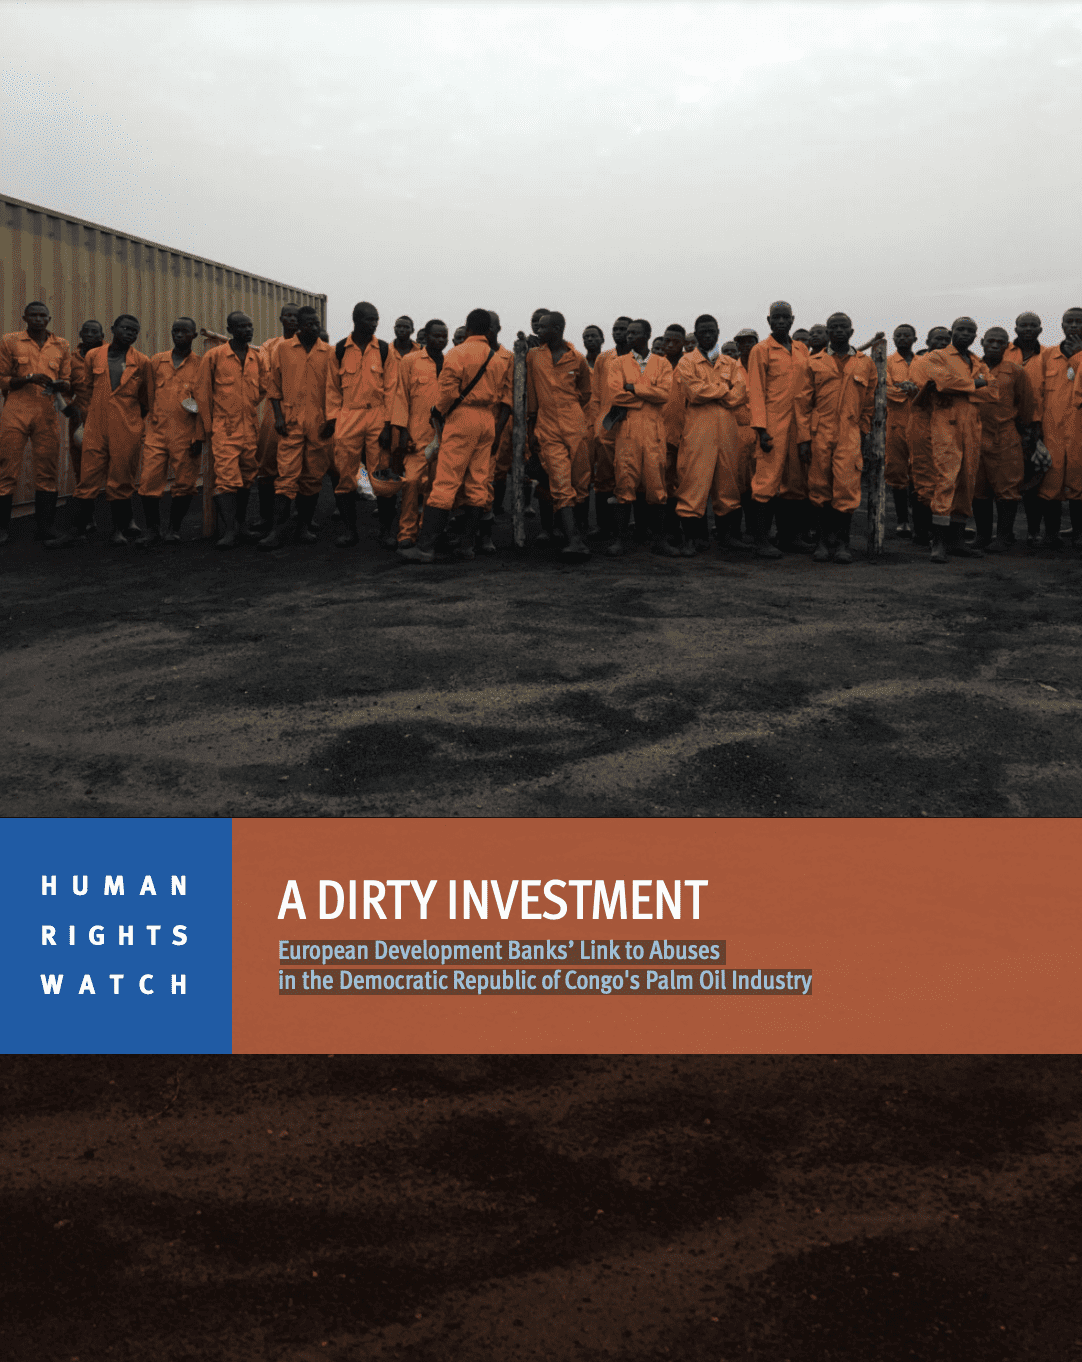 A Dirty Investment: European Development Banks' Link to Abuses in the Democratic Republic of Congo's Palm Oil Industry